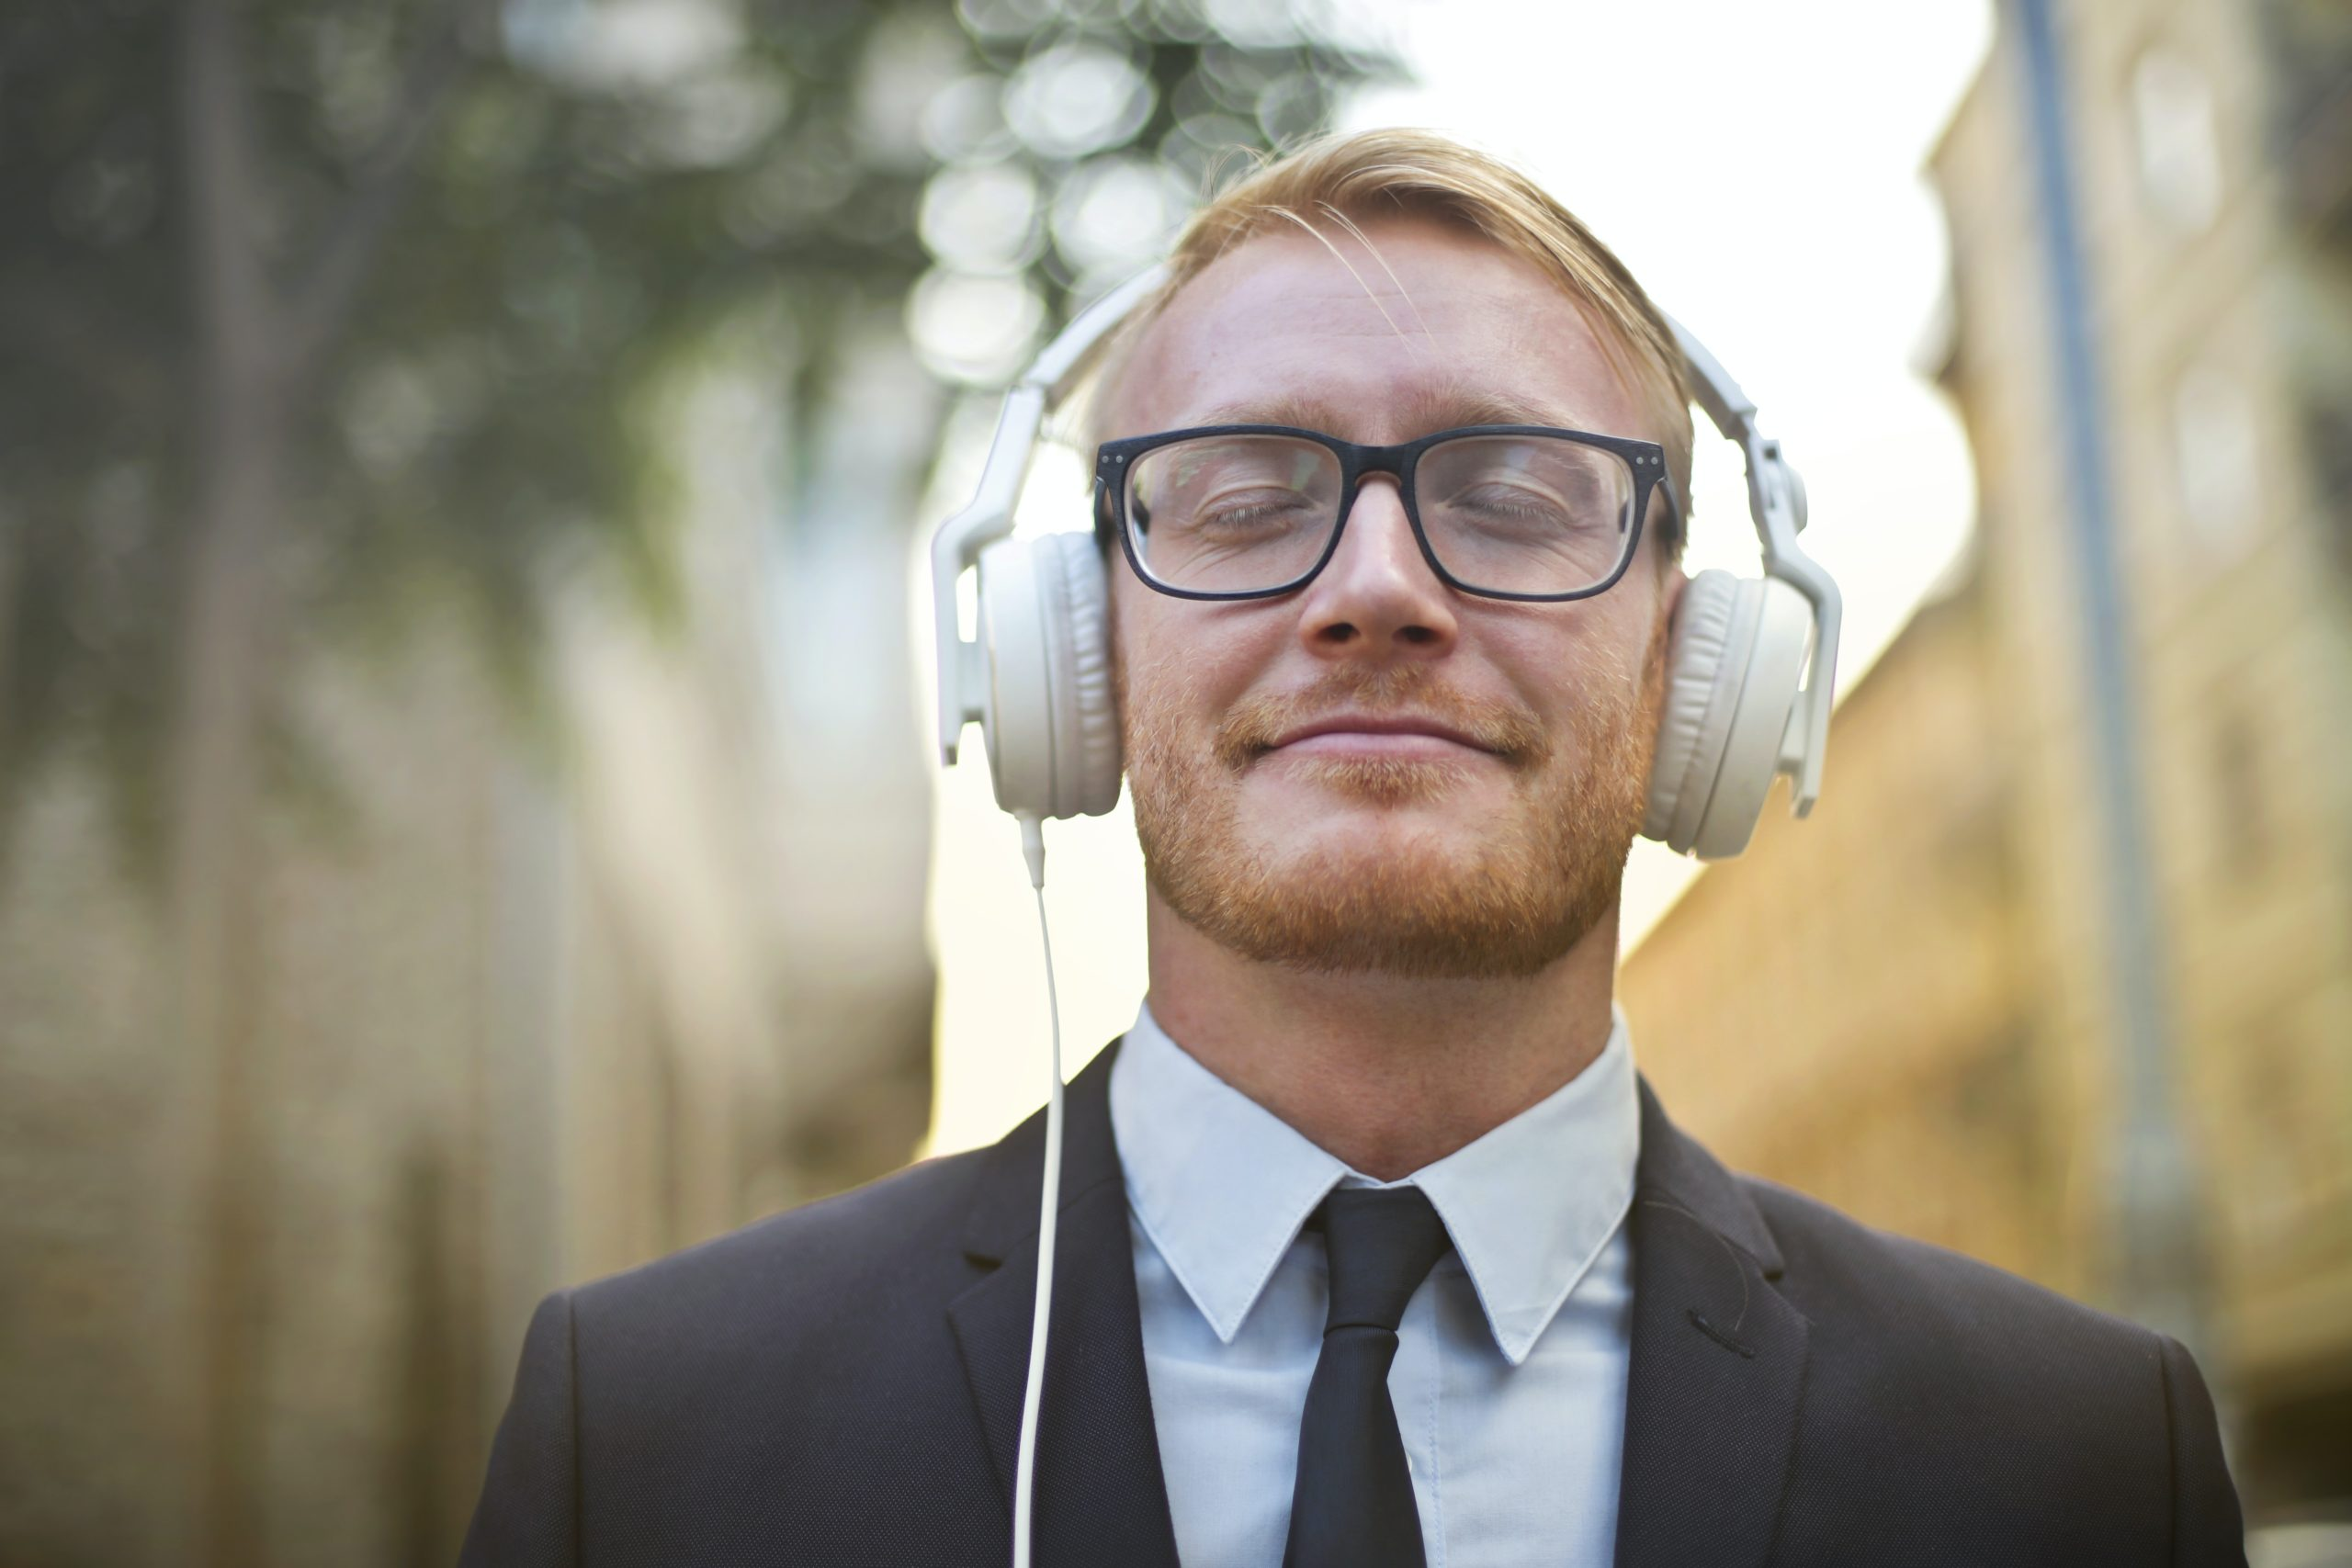 Raising Your Law Firm's Brand With YouTube Audio Ads, and Other Must-Reads